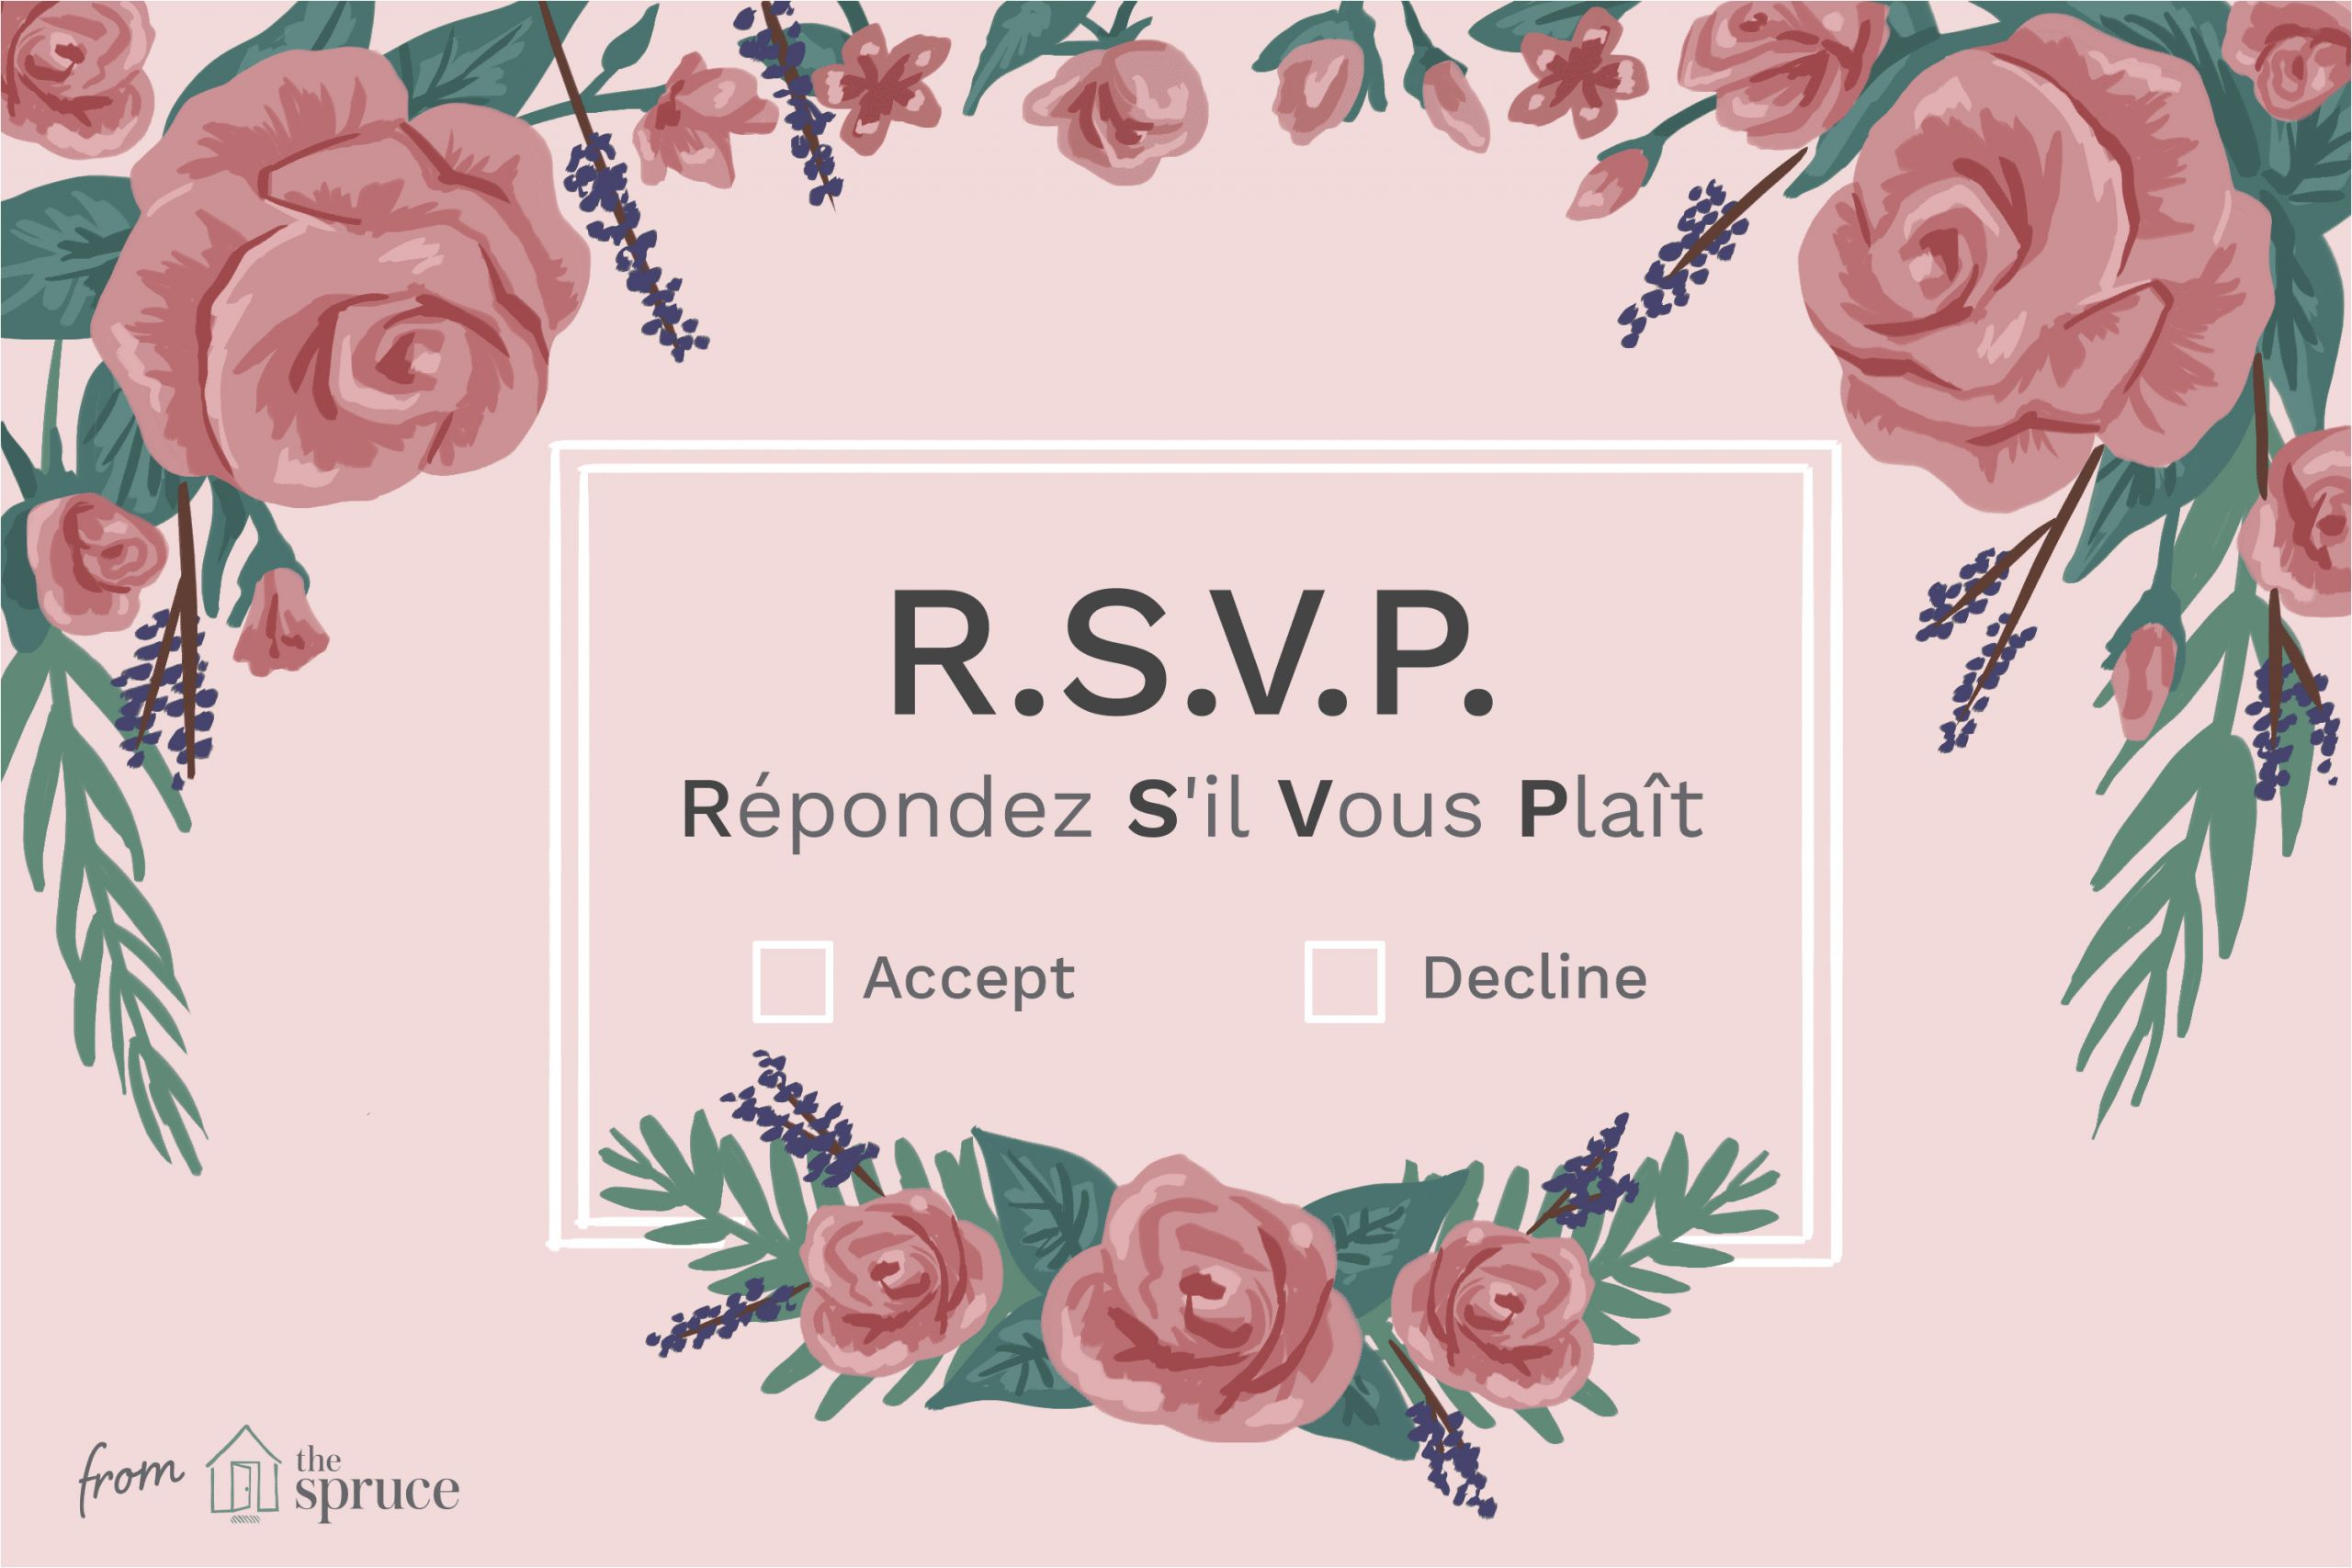 Rsvp Meaning In Marriage Card What Does Rsvp Mean On An Invitation